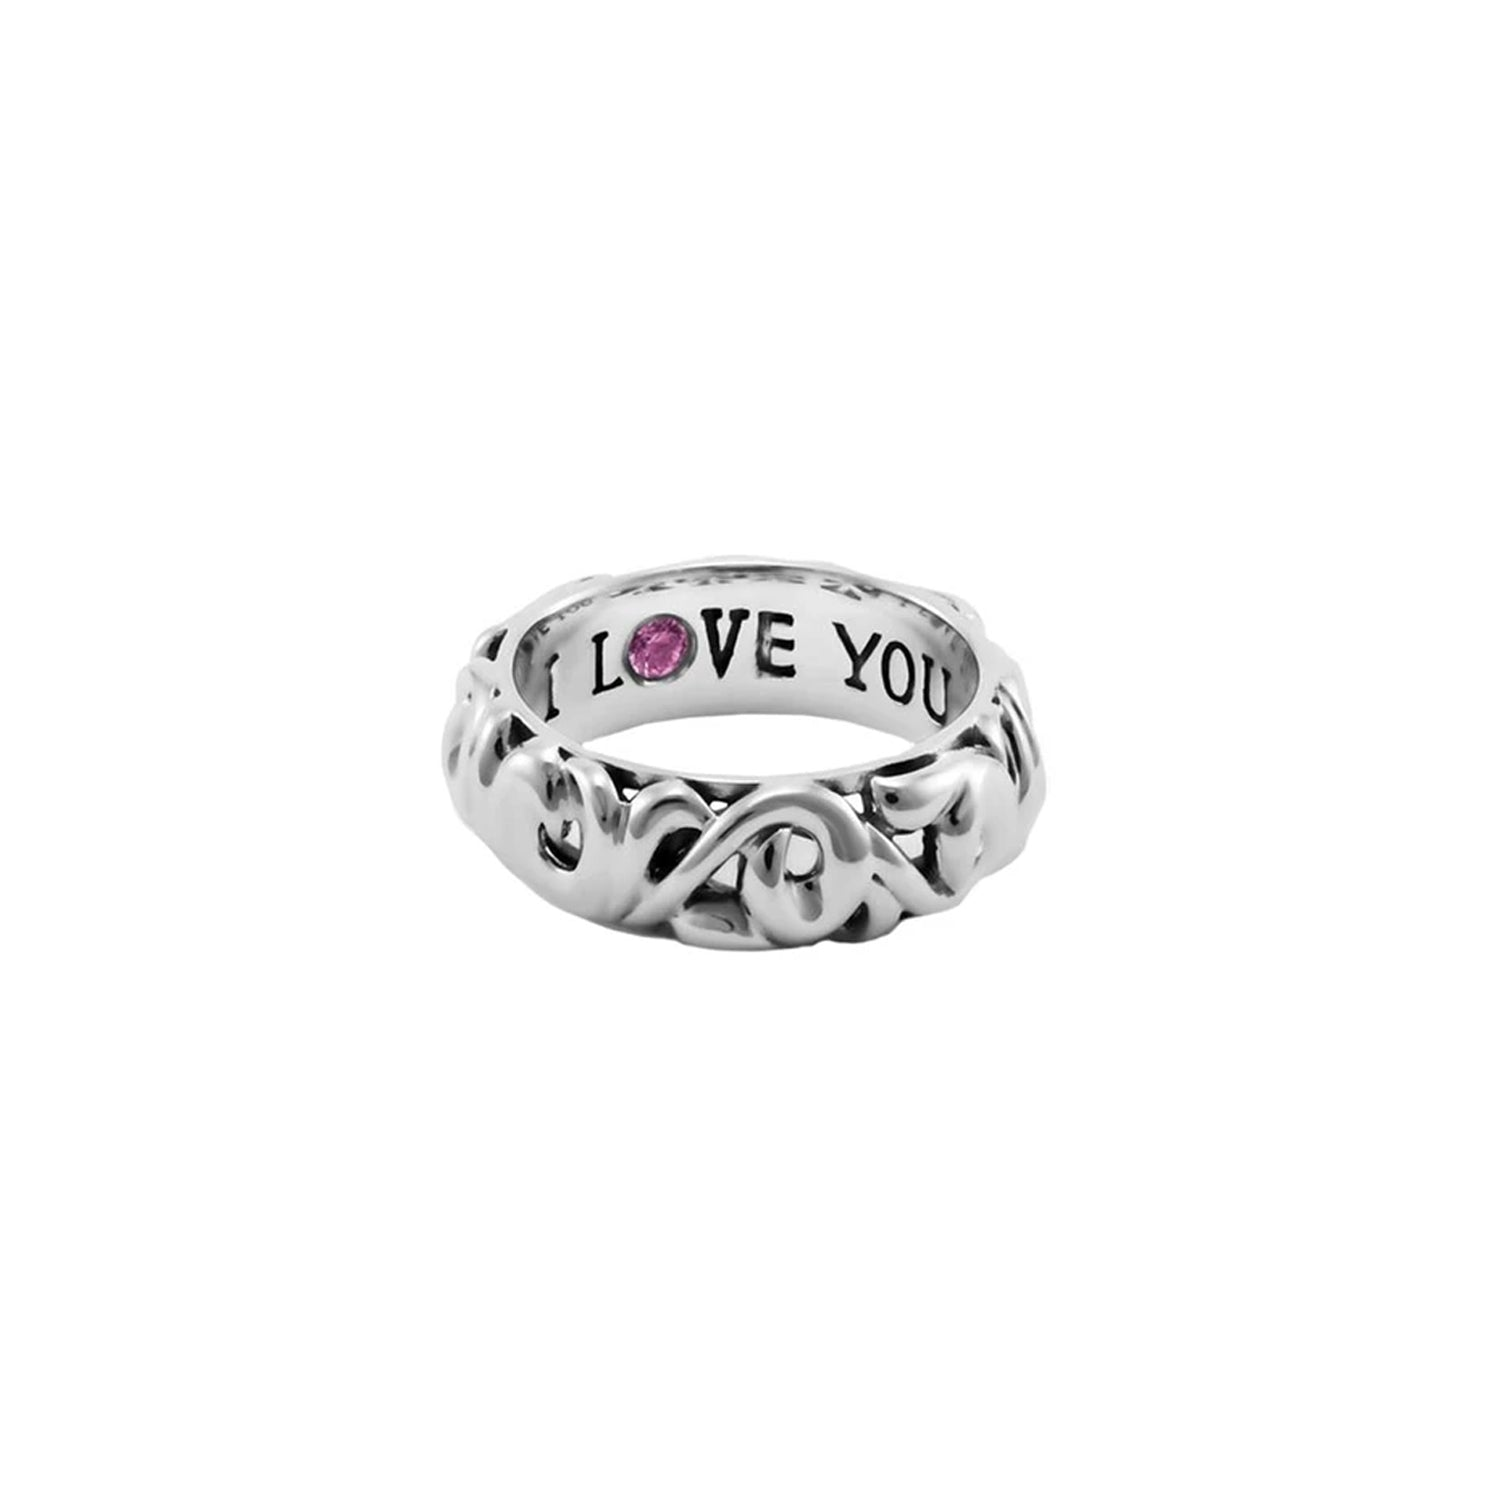 Charles Krypell 'I Love You' Sterling Silver Ring